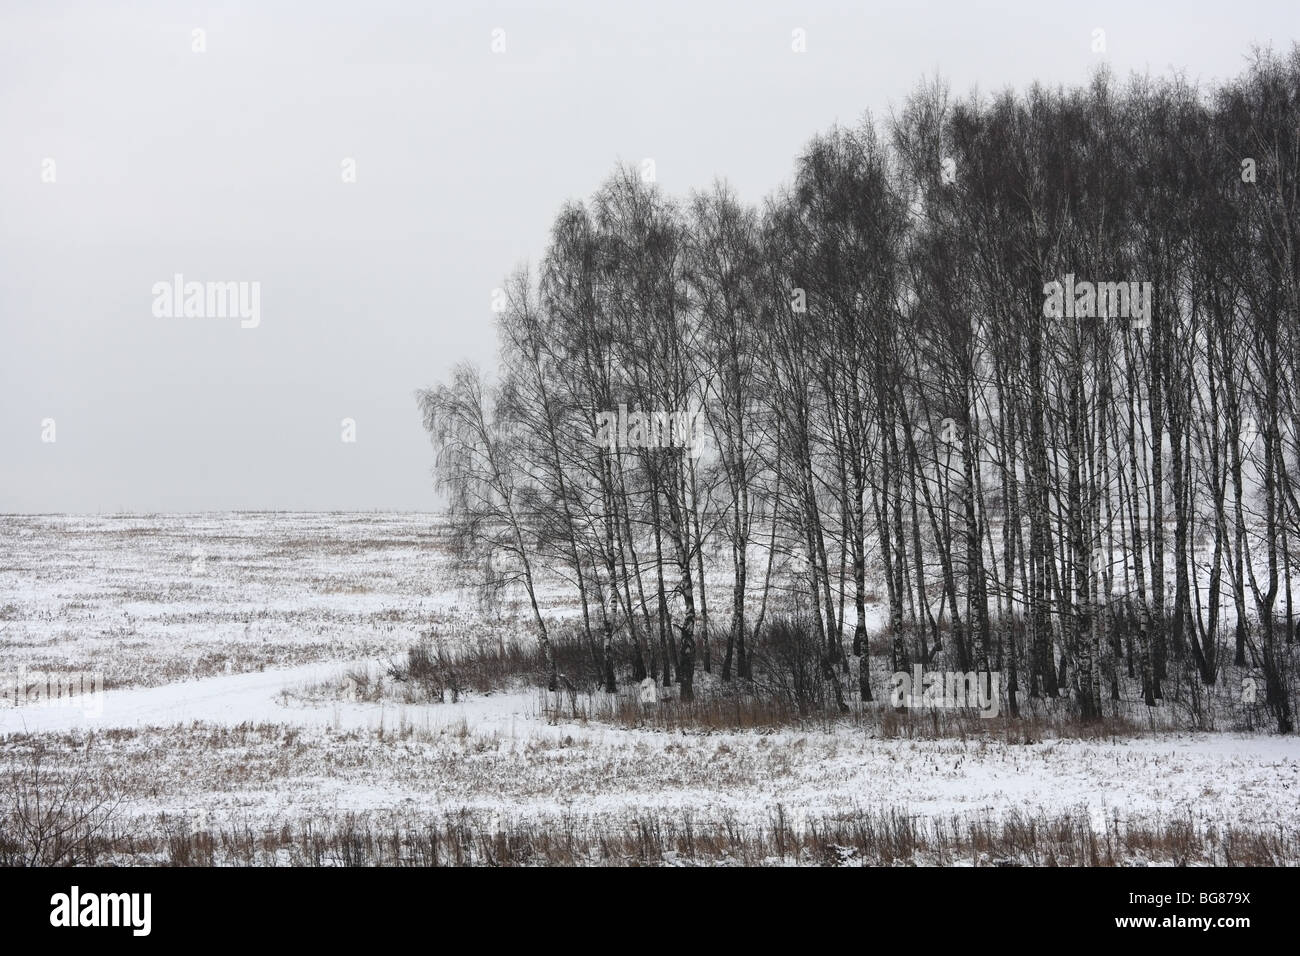 Winter landscape with birch trees on an overcast day - Stock Image